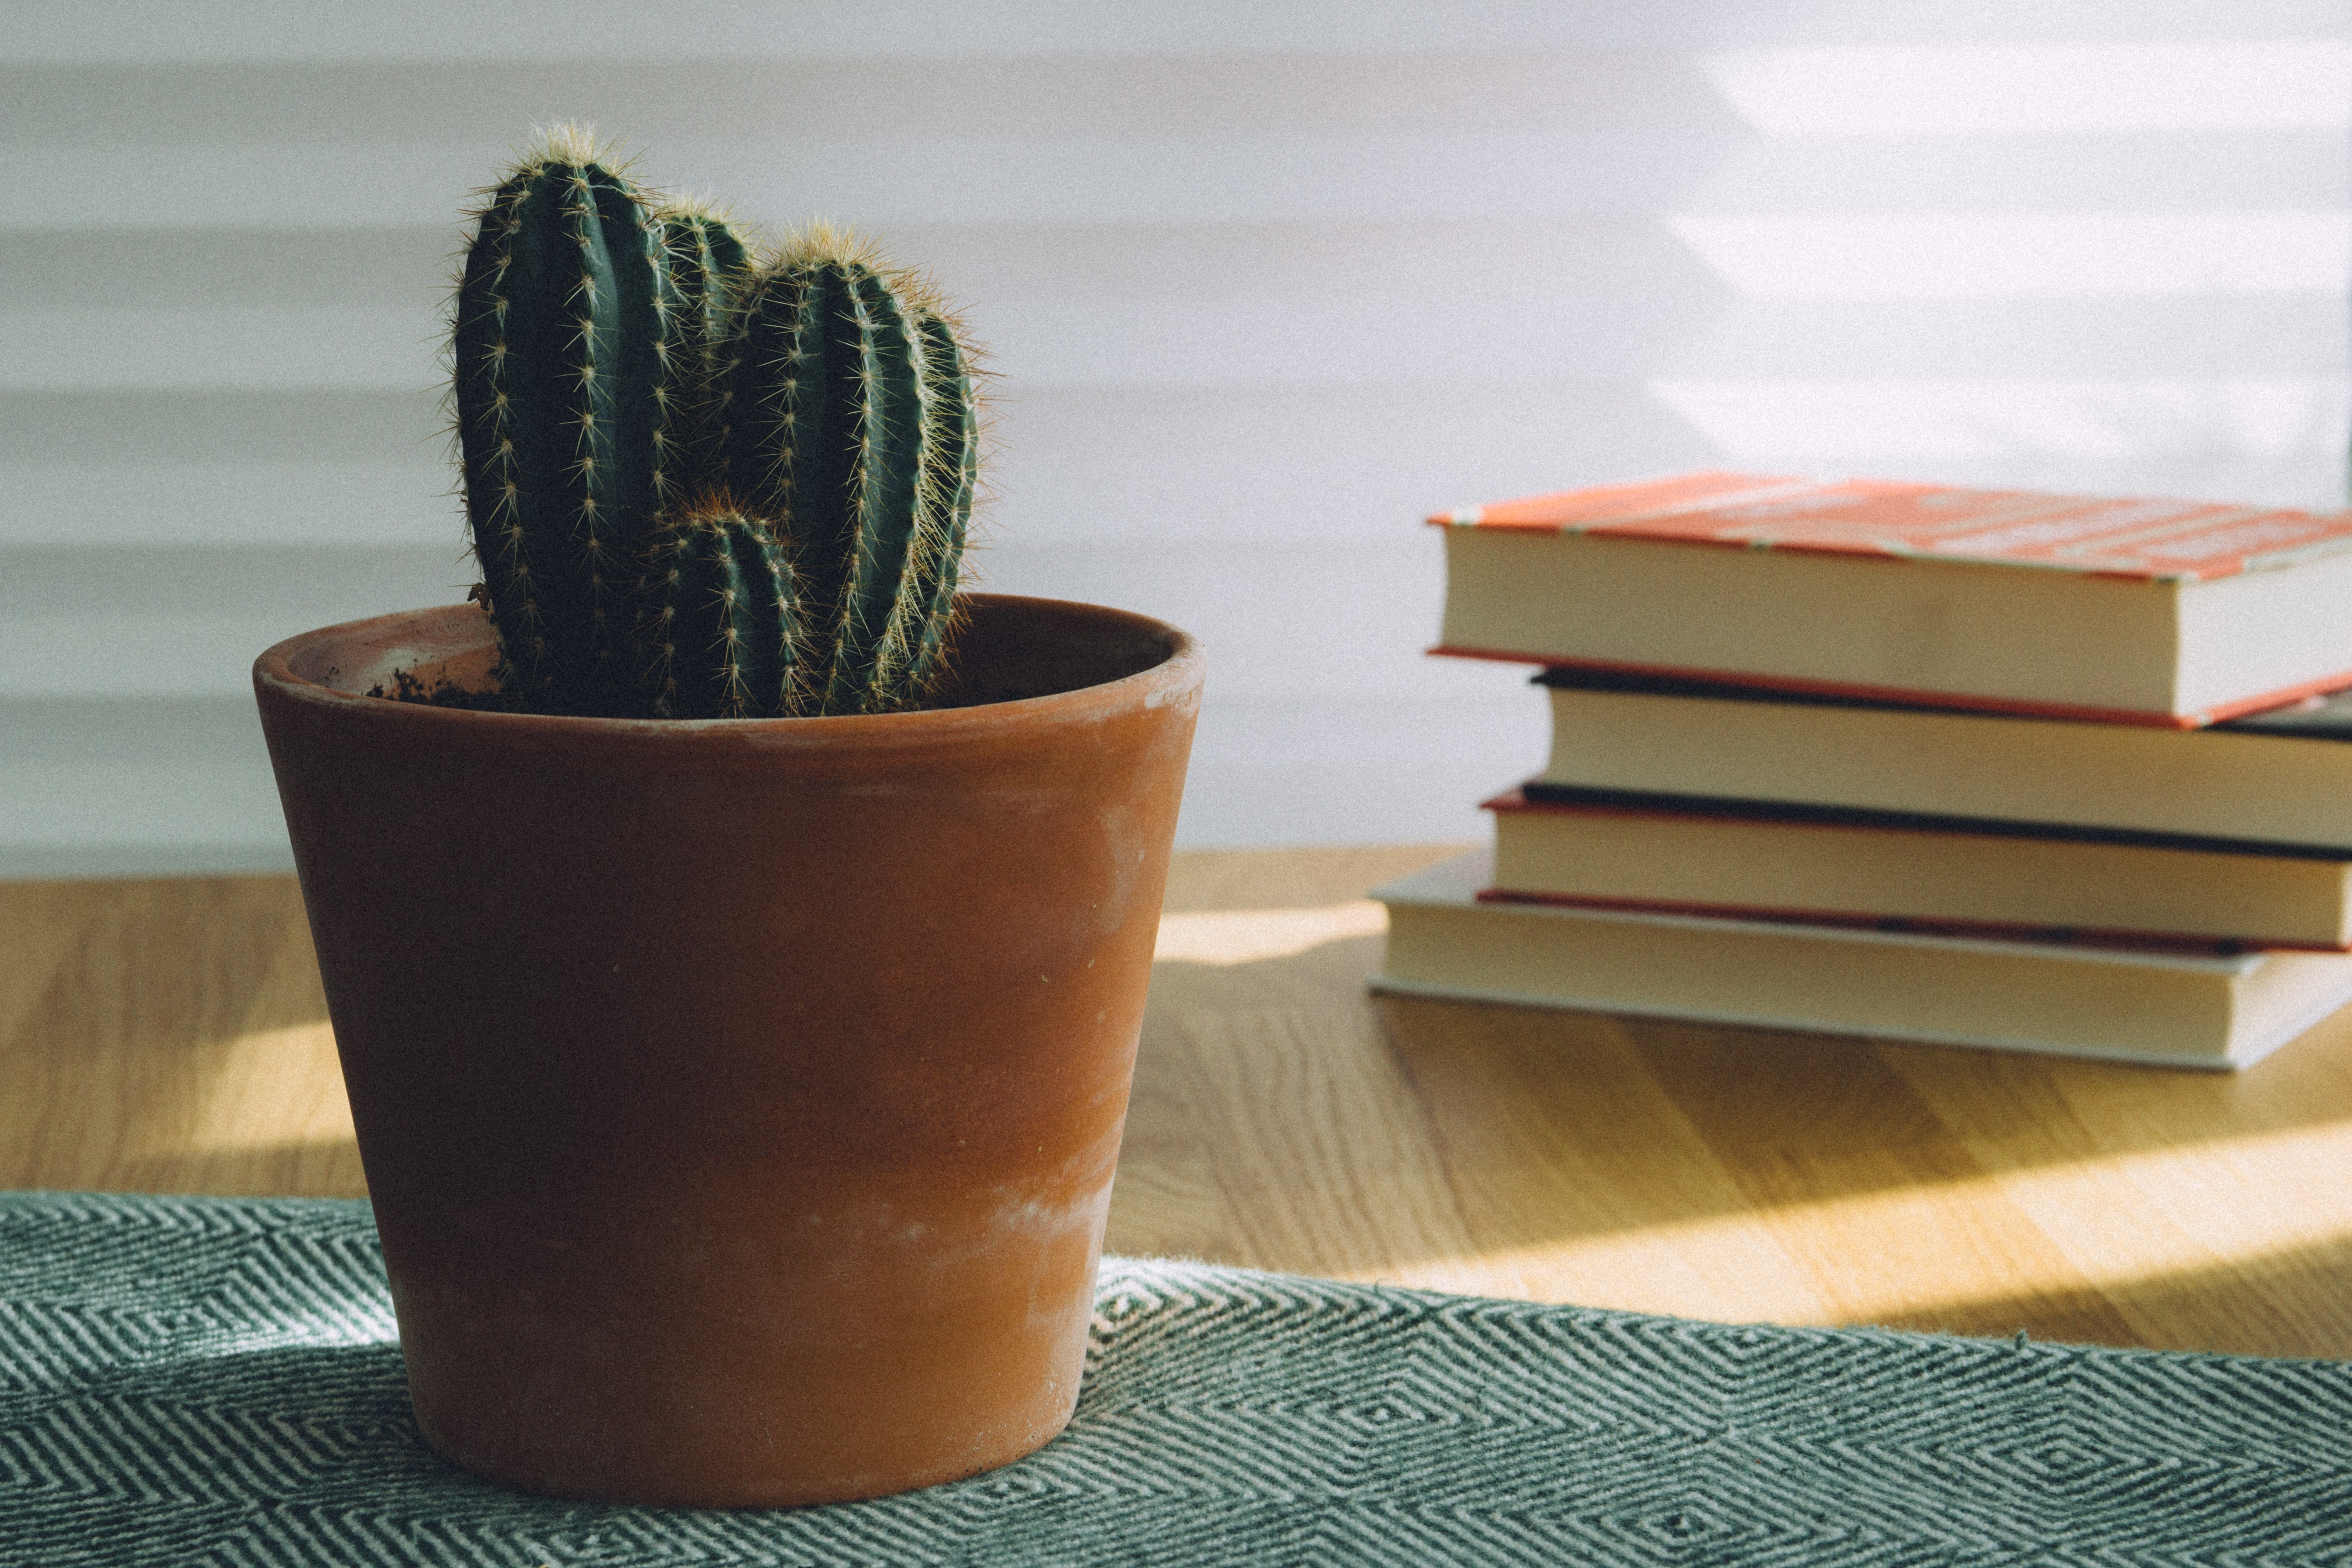 green cactus potted plant